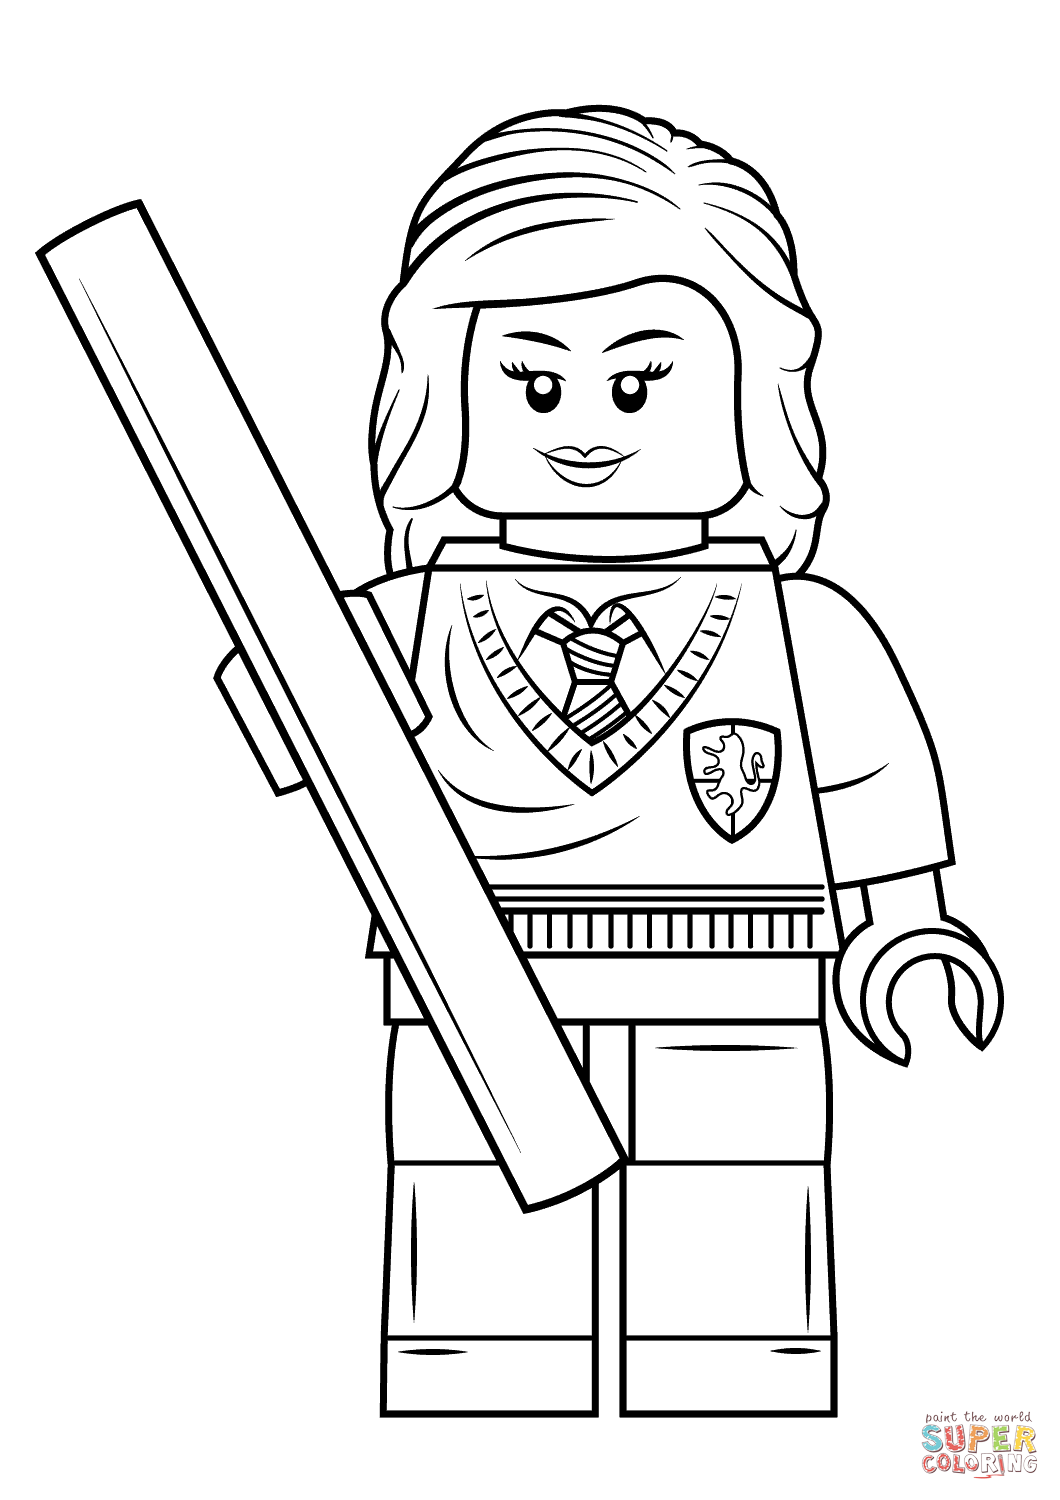 Lego Hermione Granger Coloring Page Free Printable Coloring Pages